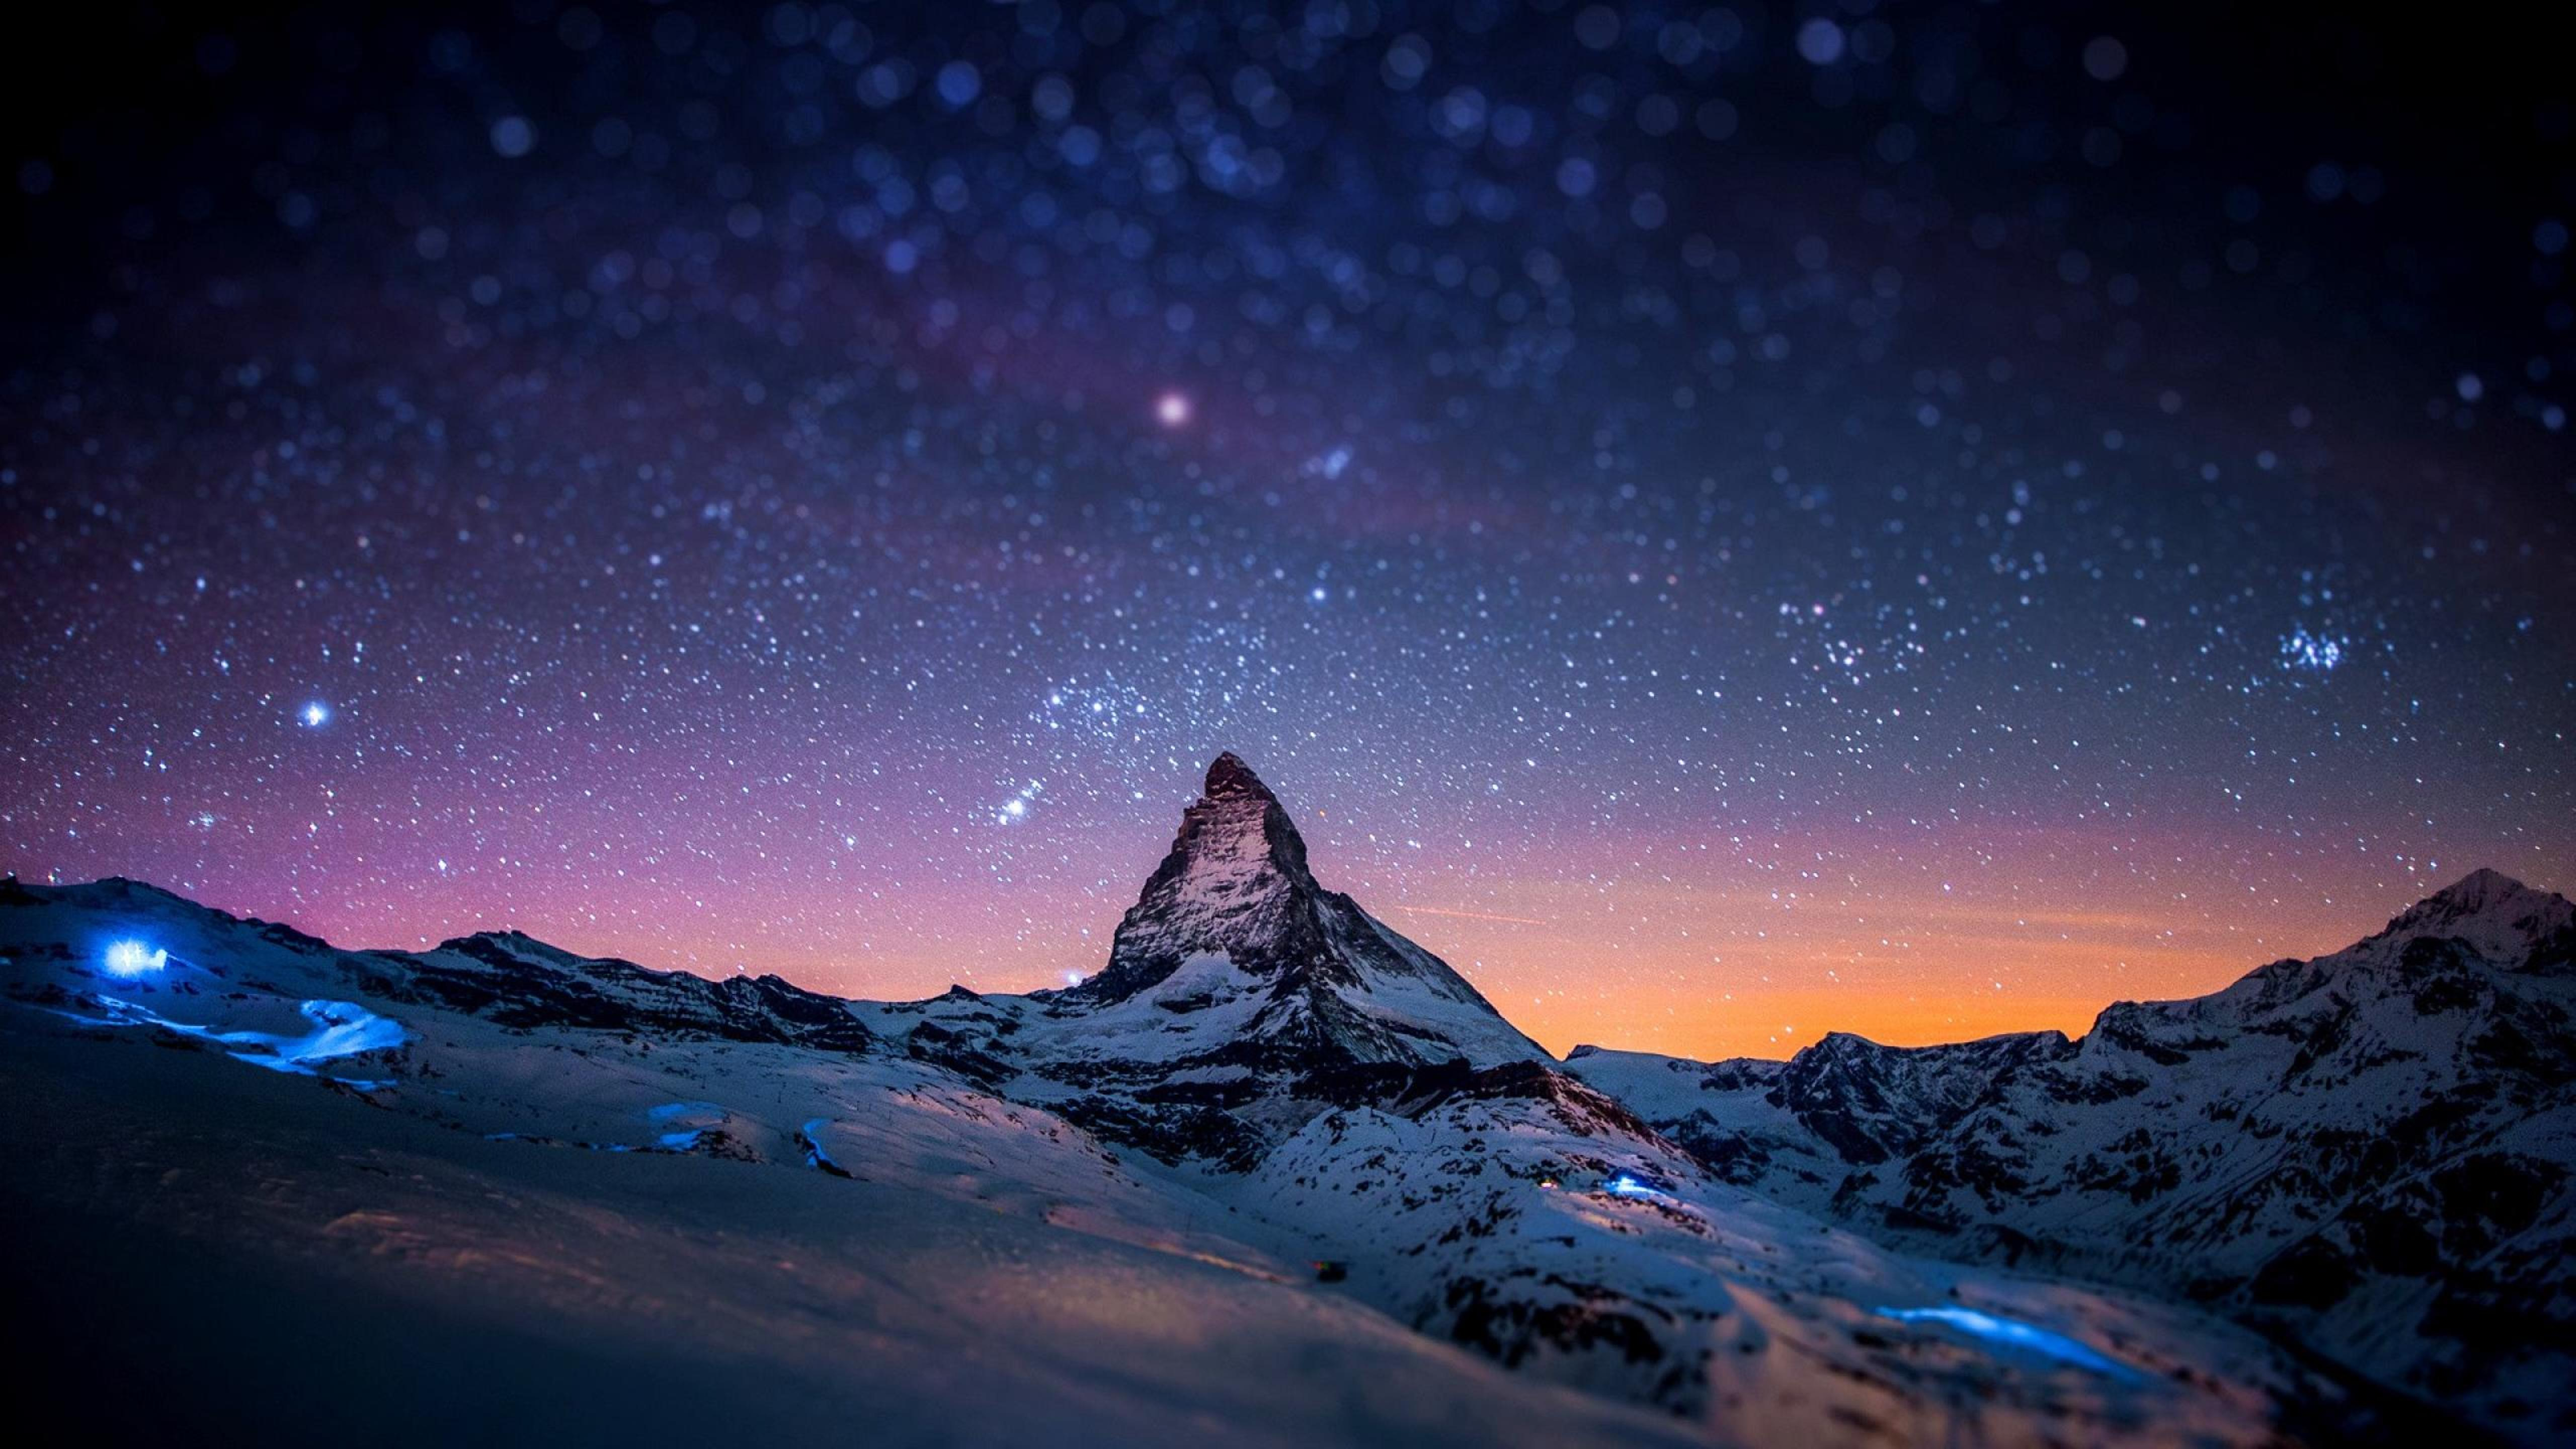 Bmw Mountain View Service >> Night view of sky full of stars Wallpaper Download 5120x2880